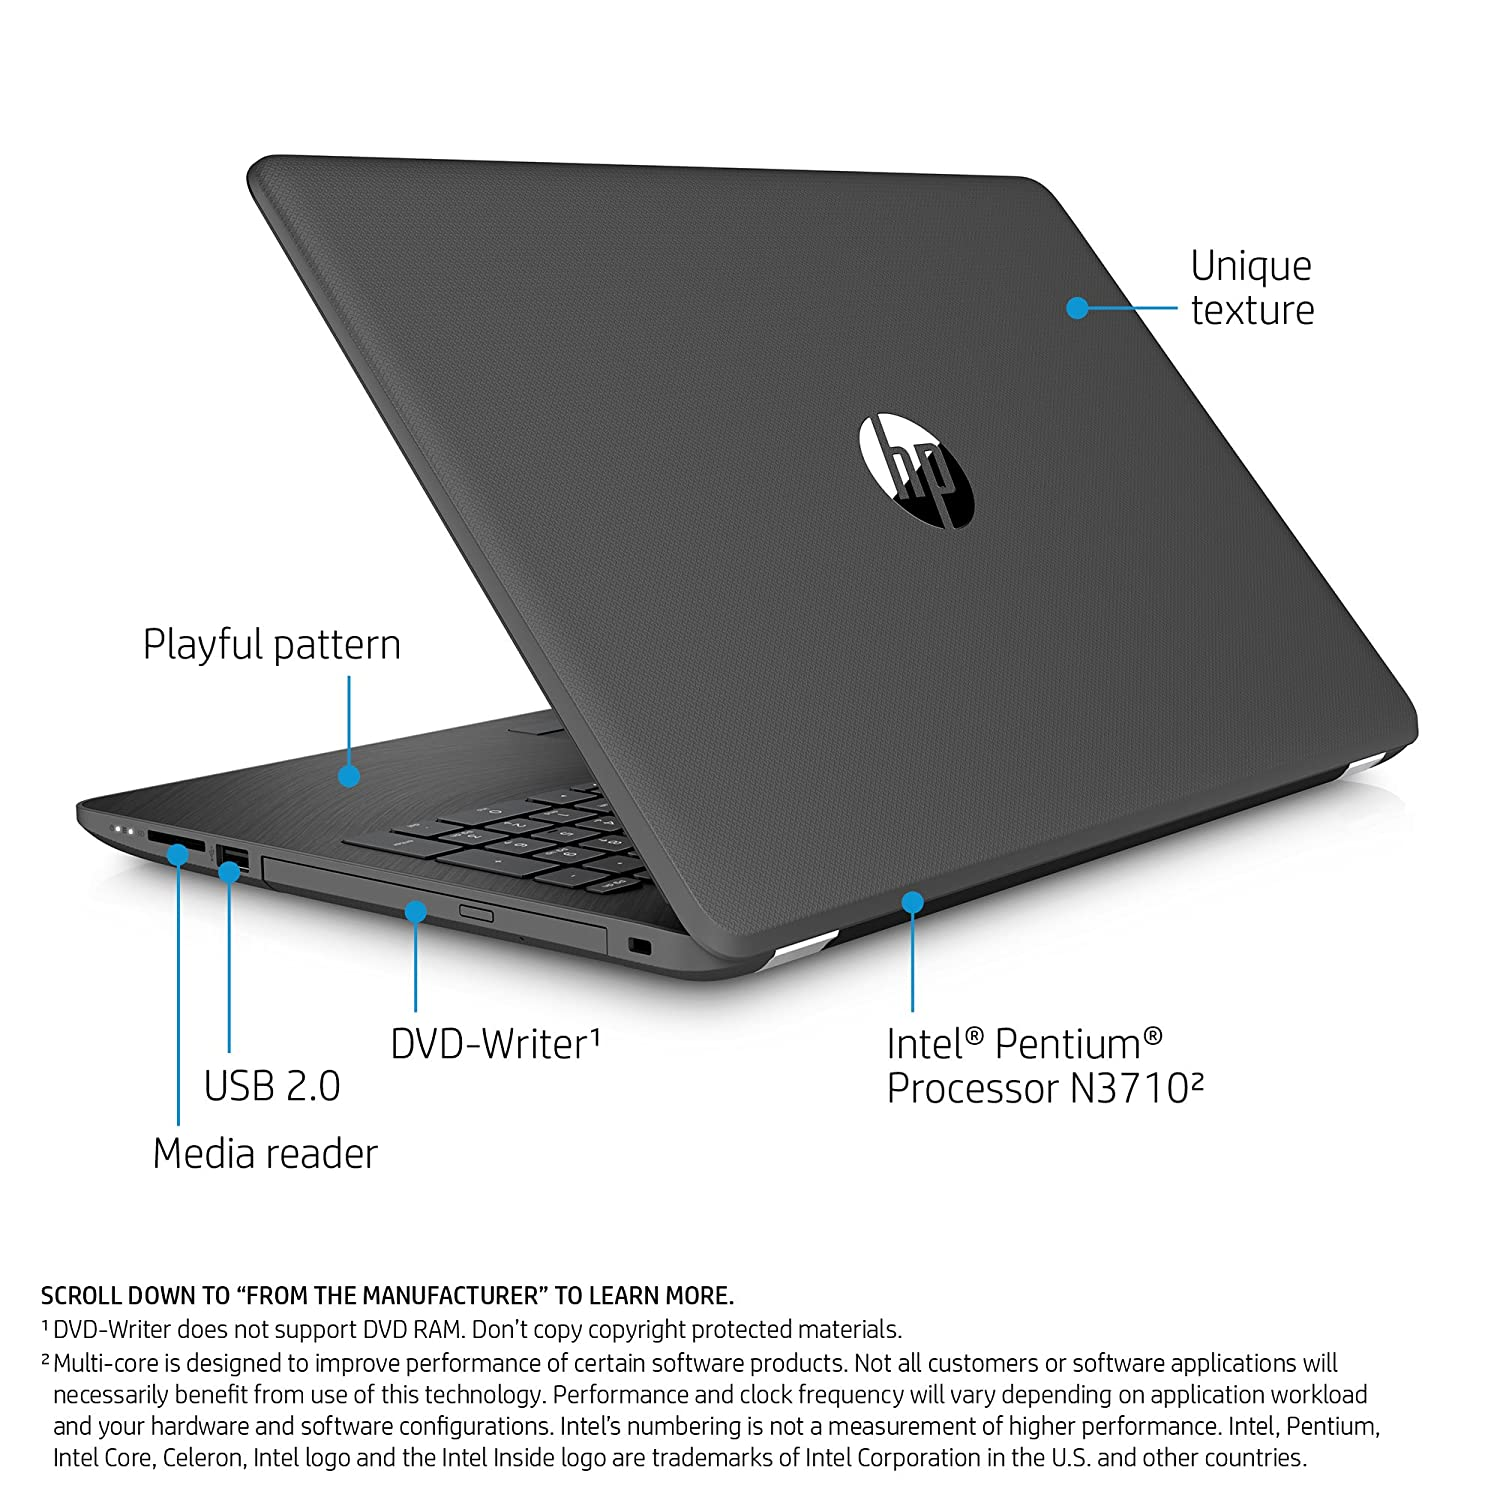 Amazon.com: HP 15-inch Laptop, Intel Pentium N3710, 4GB RAM, 1TB hard drive, Windows 10 (15-bs010nr, Gray): Computers & Accessories